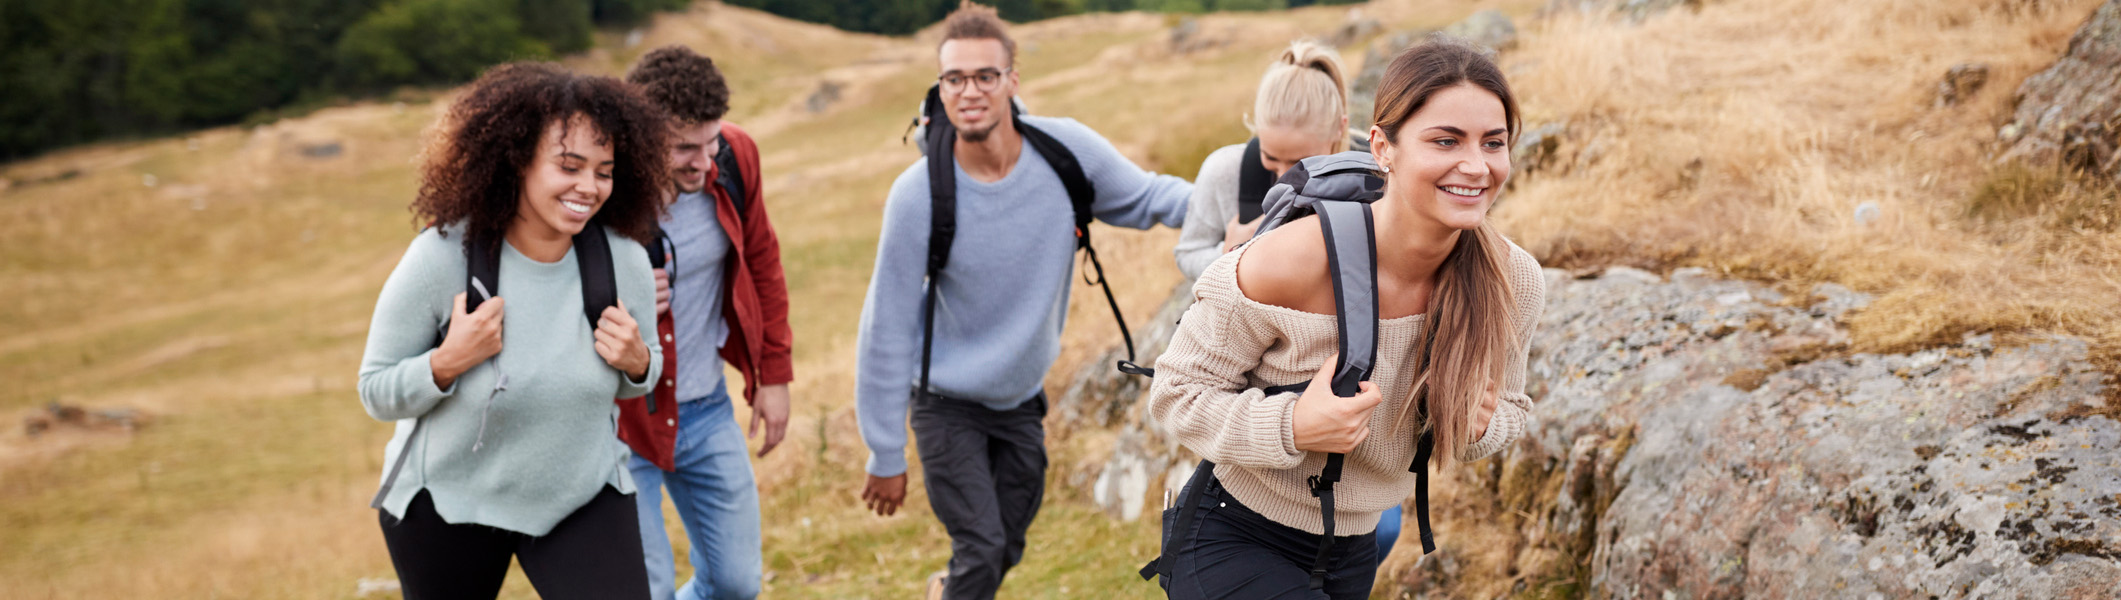 Diverse group of young adults hiking